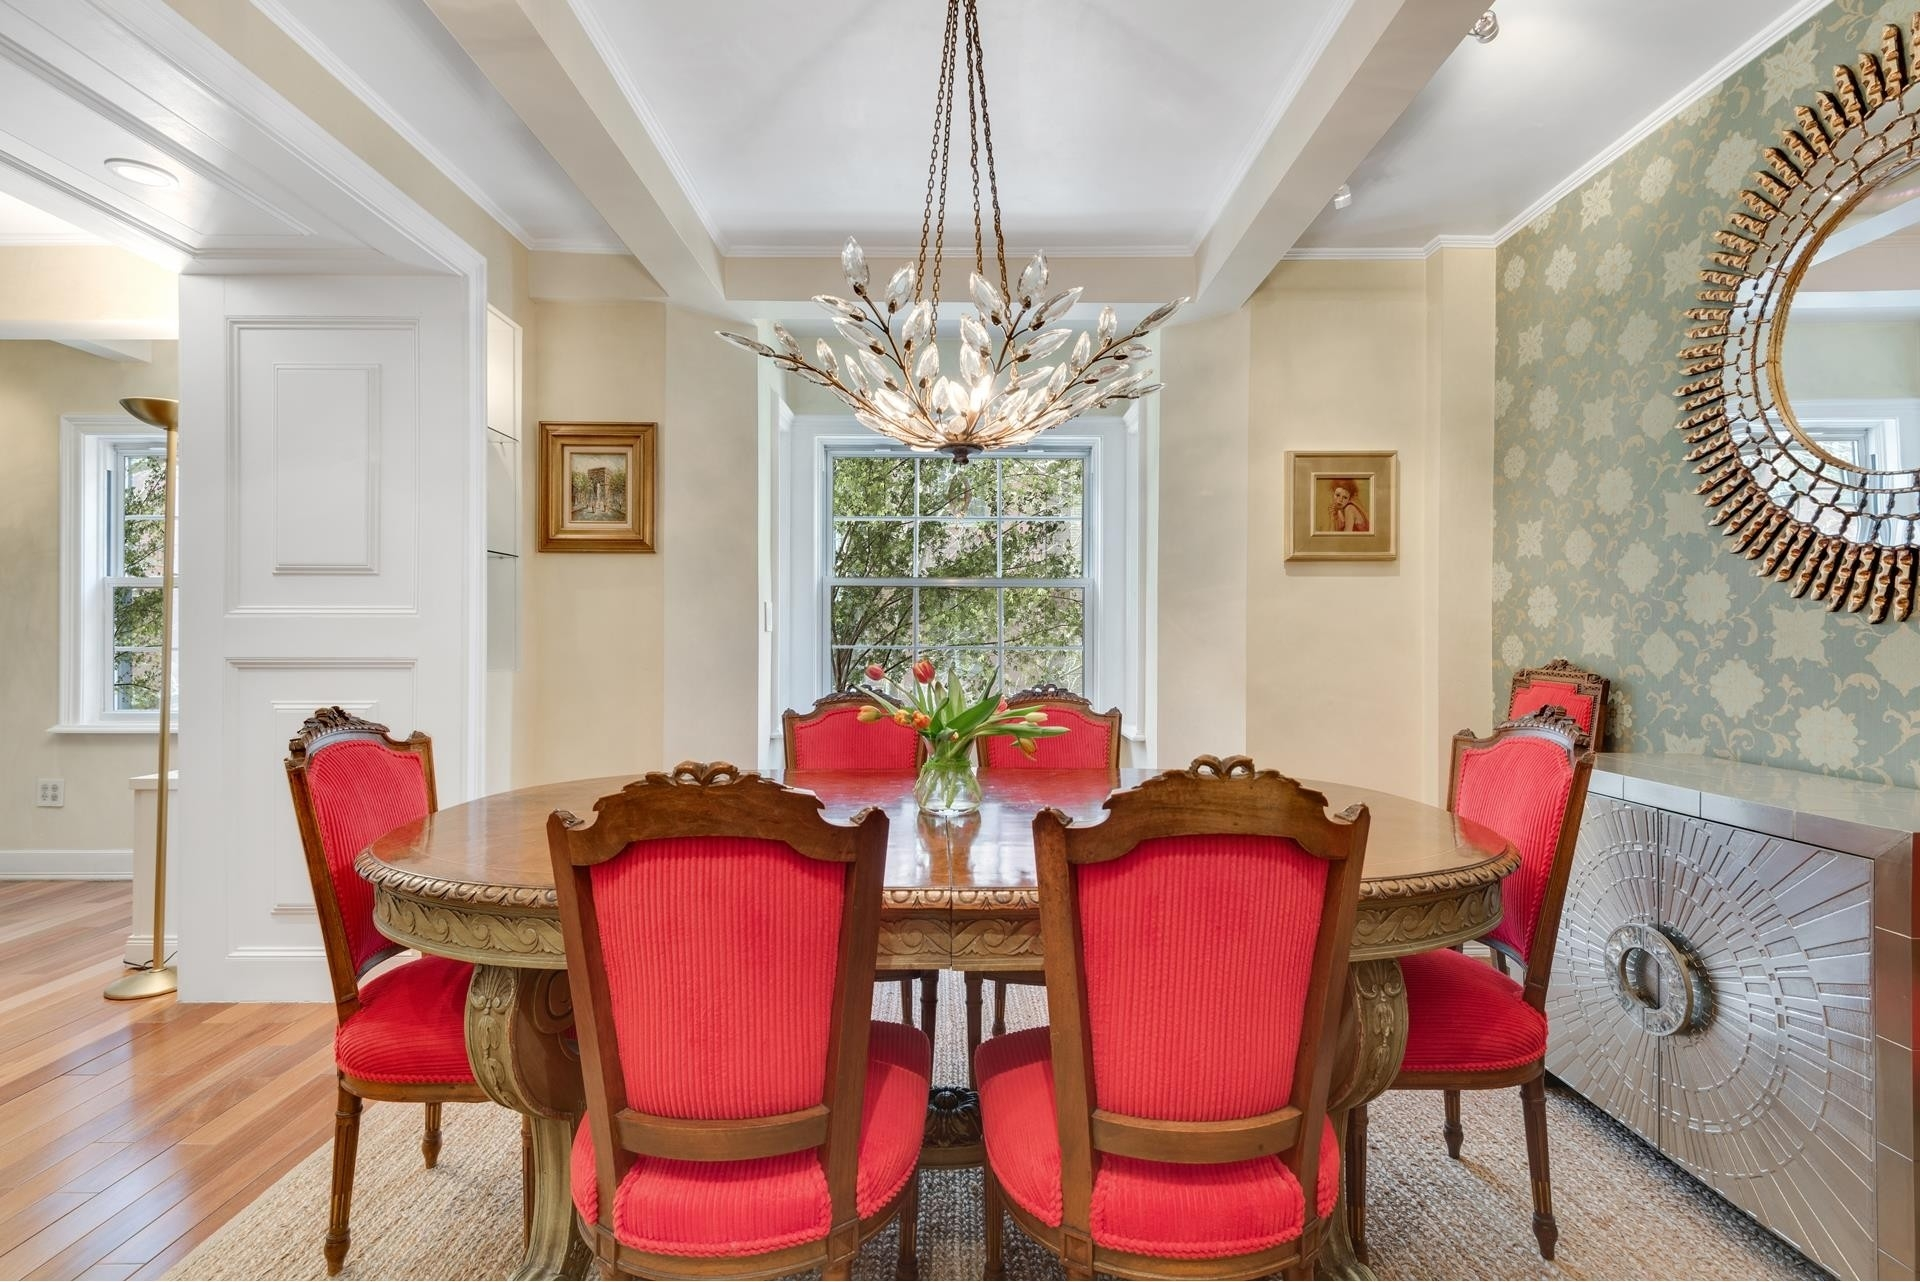 4. Co-op Properties for Sale at Colonial Studios, 39 W 67TH ST , 401402301 Lincoln Square, New York, NY 10023